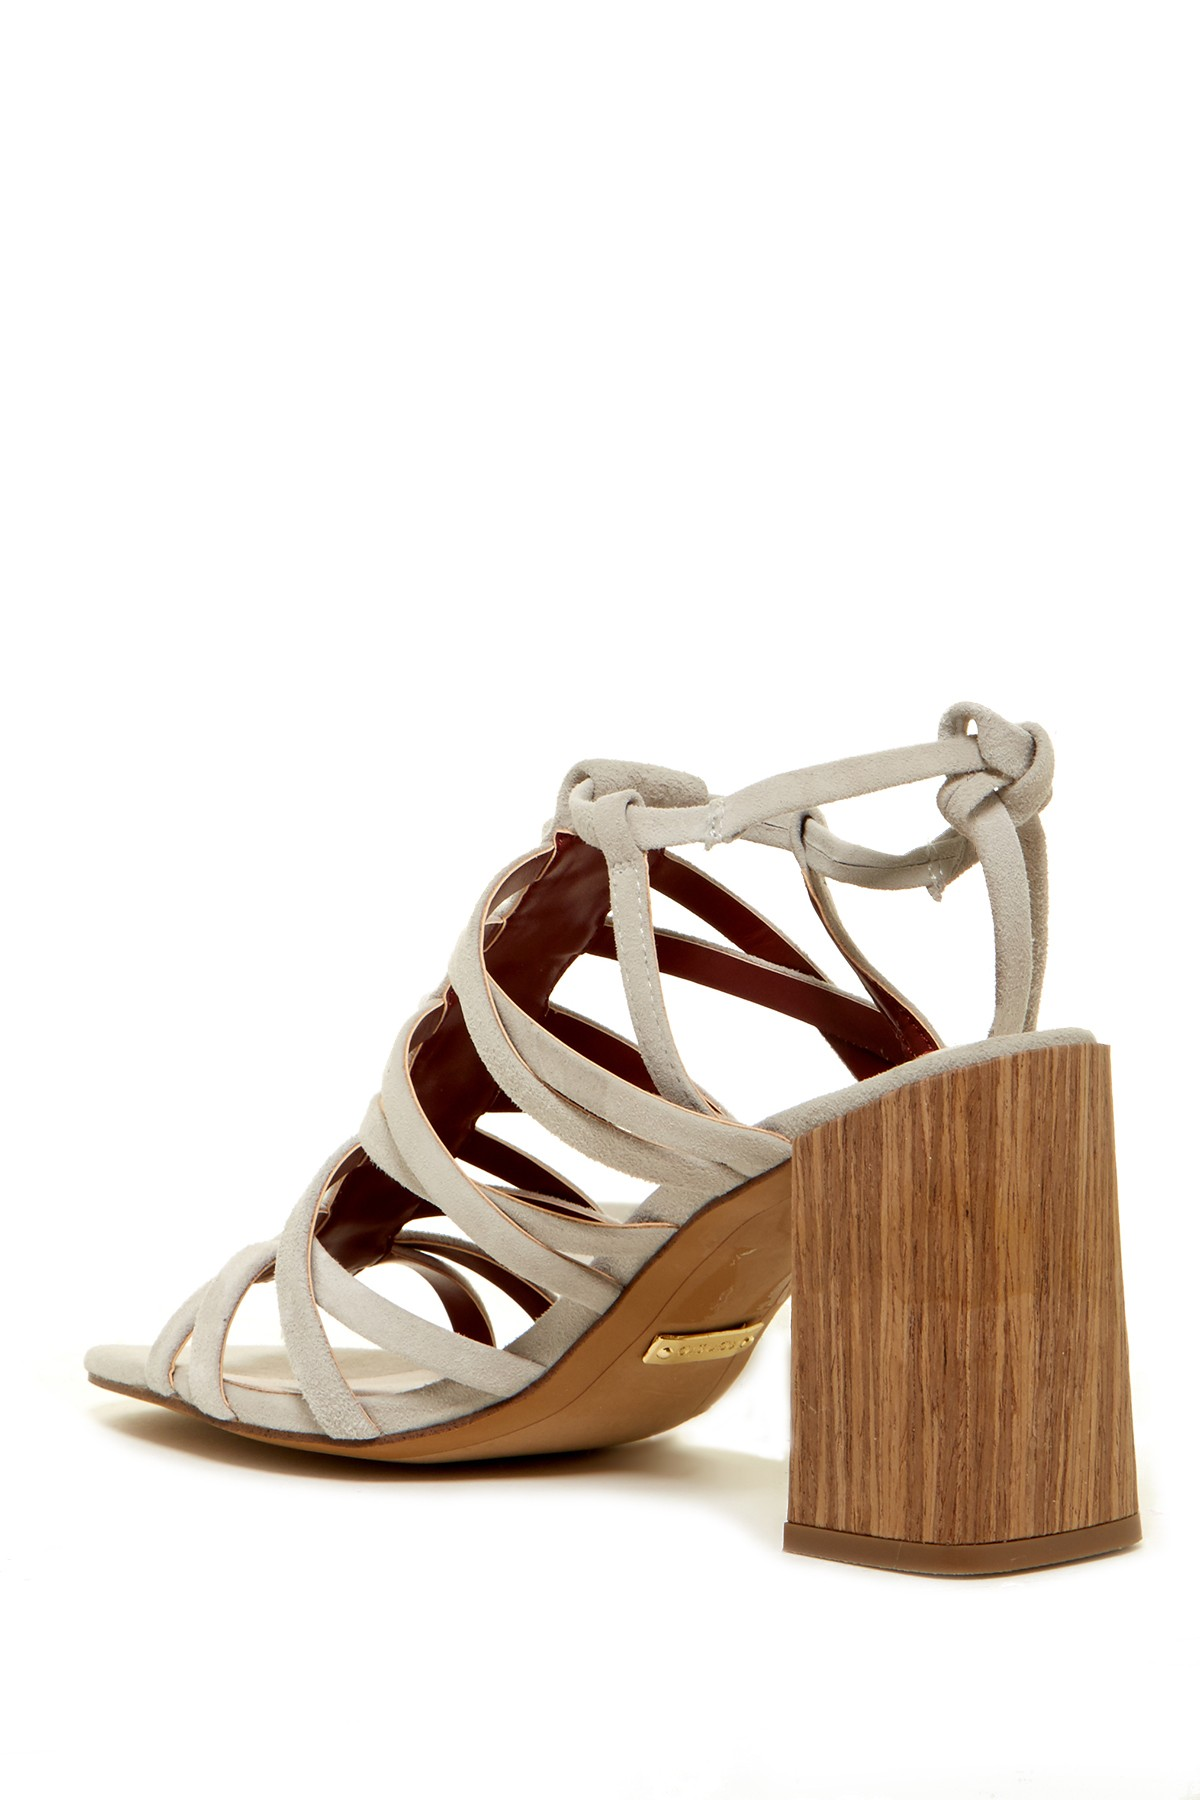 kensie Womens Sadira Suede Strappy Open Toe Casual Strappy Suede Sandals 0fd788